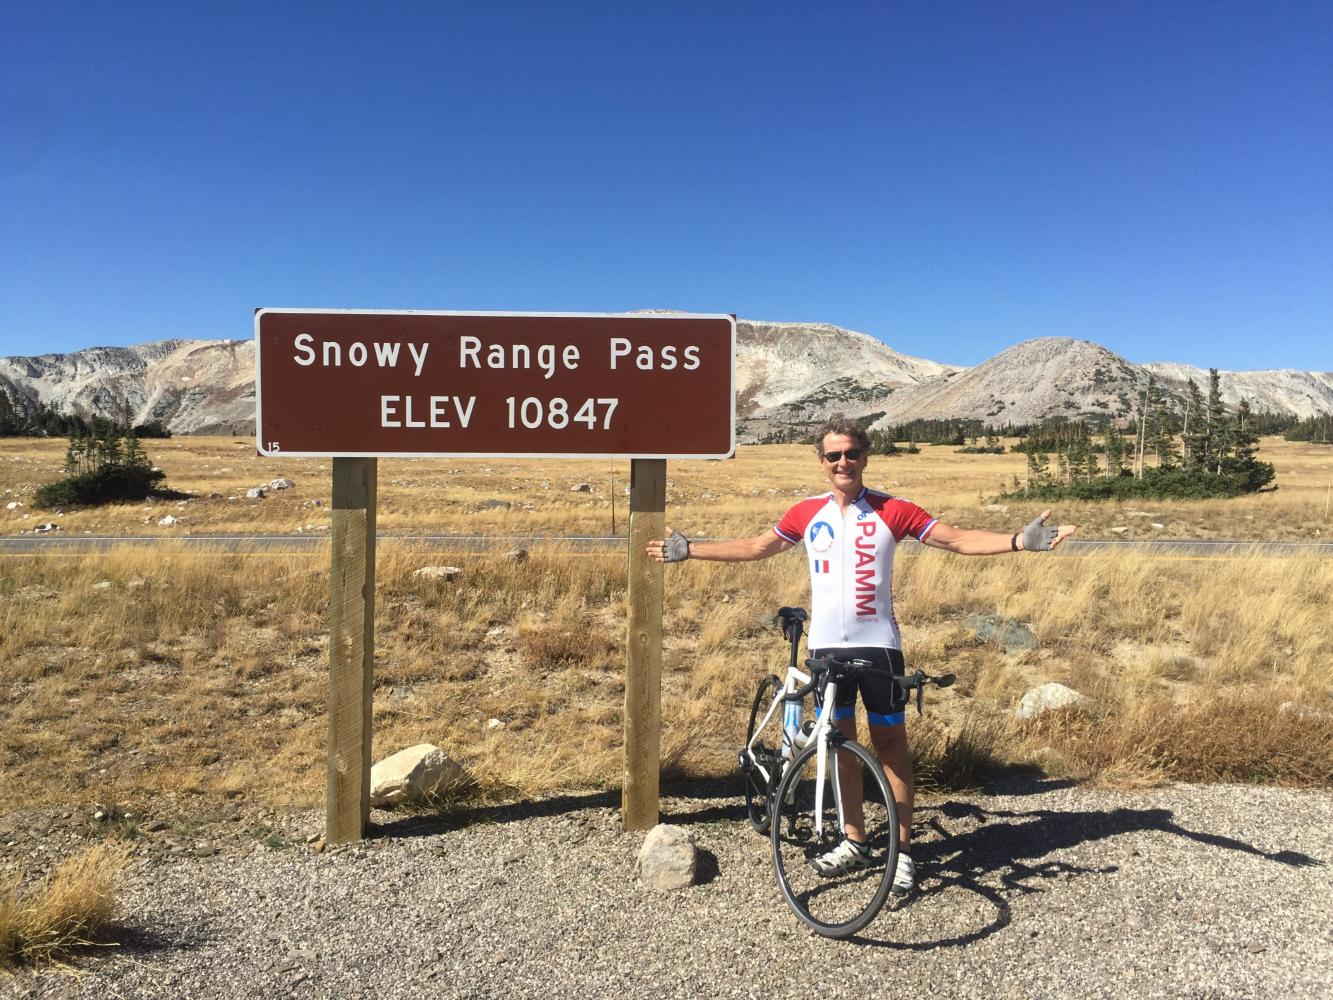 Snowy Range Pass East Bike Climb - PJAMM Cycling